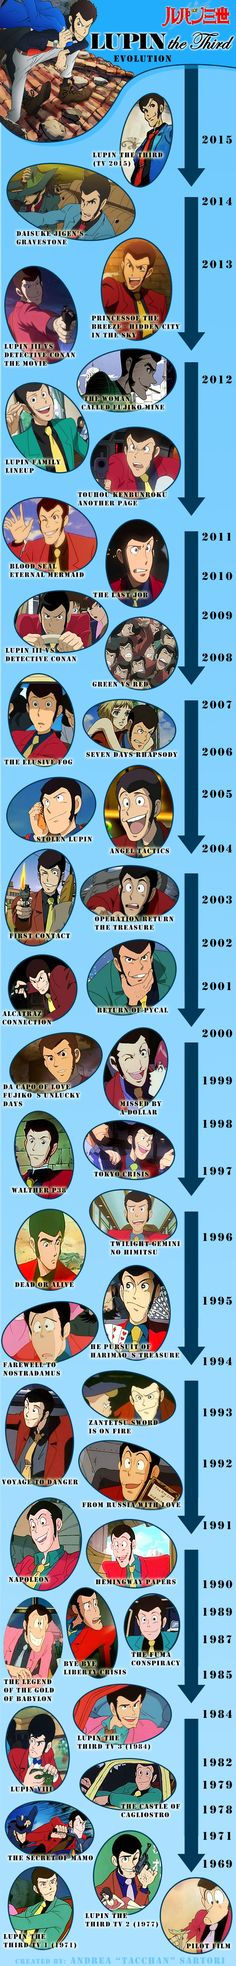 Lupin III - Look evolution from 1969 to 2015 I grew up watching castle of cagliostro. Such a good movie